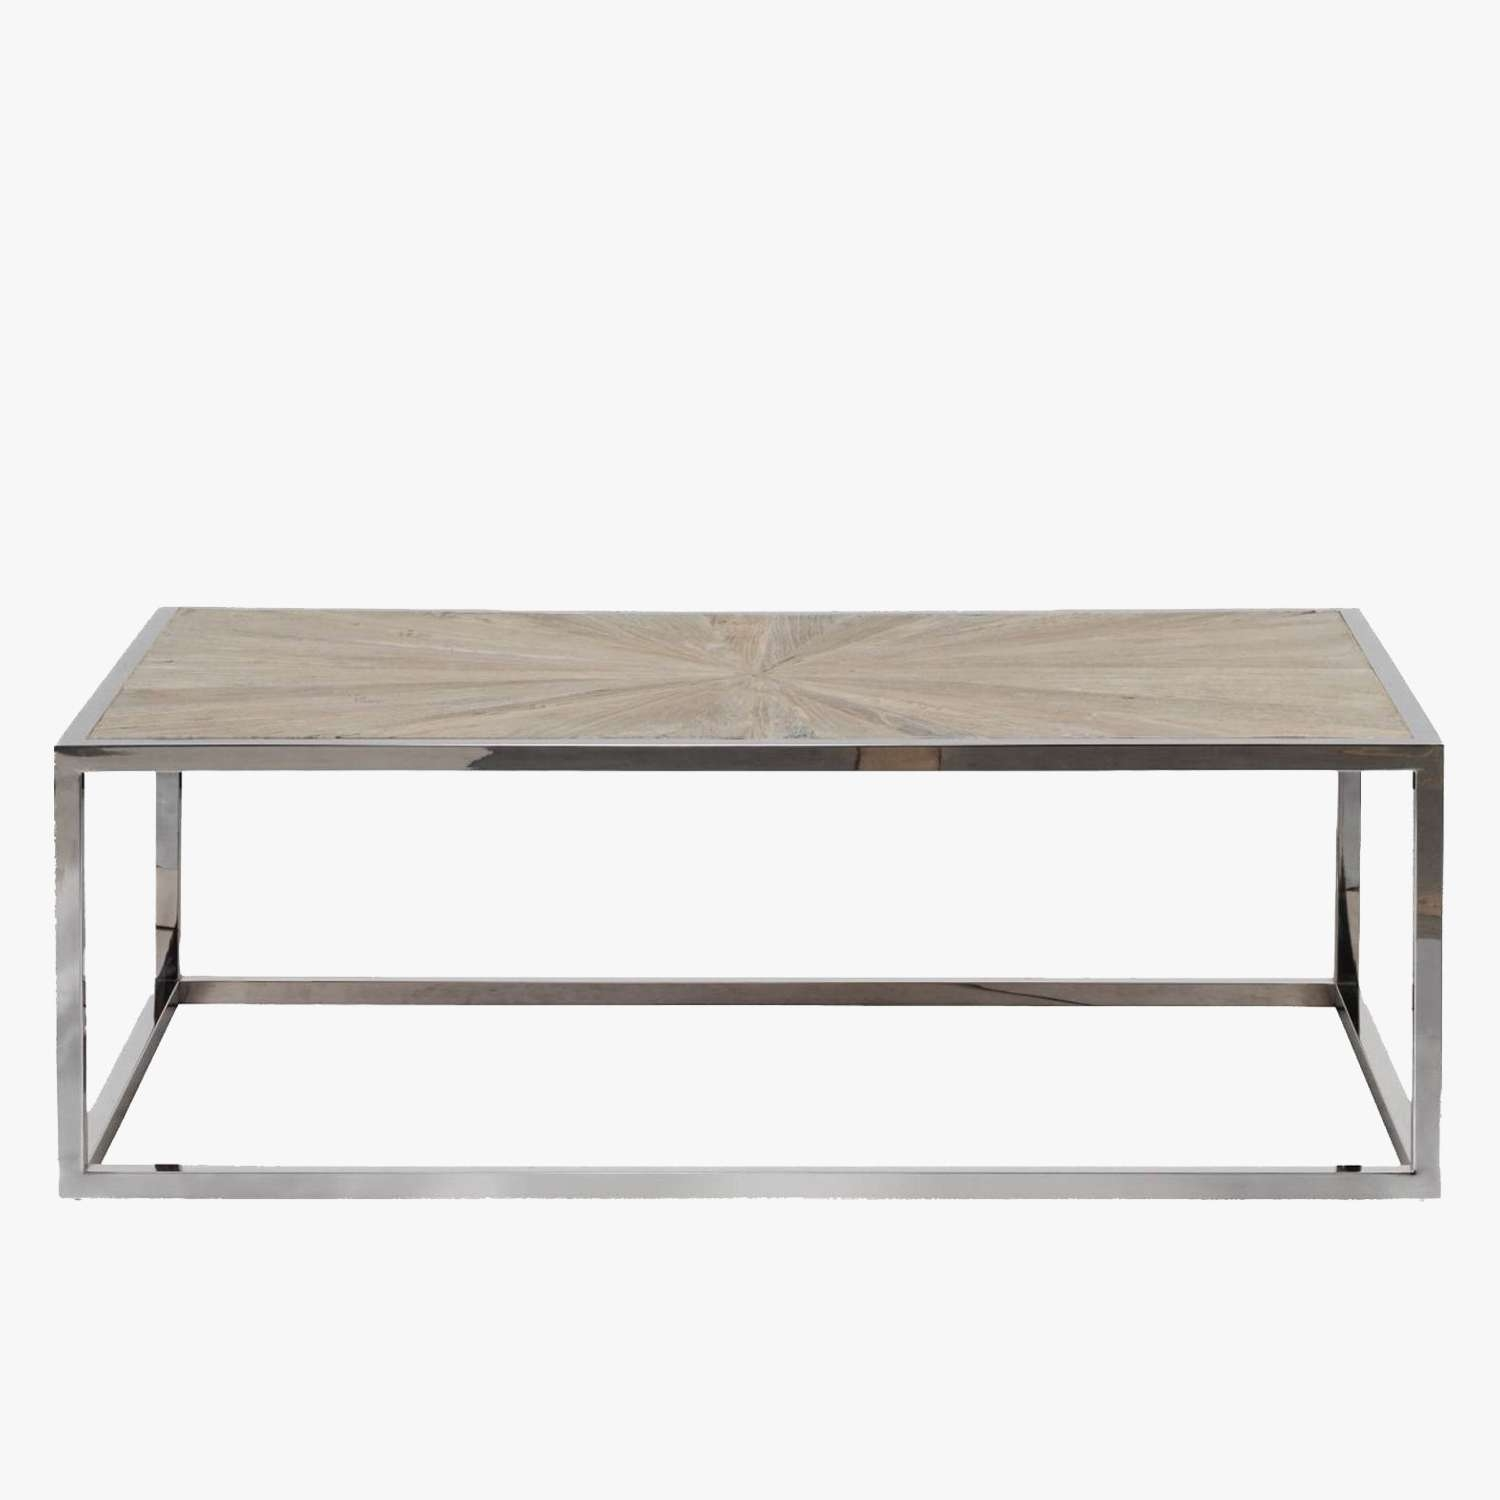 Coffee Tables : Bear Coffee Table With Glass Top Industrial Rustic With Regard To Favorite Low Industrial Coffee Tables (View 16 of 20)